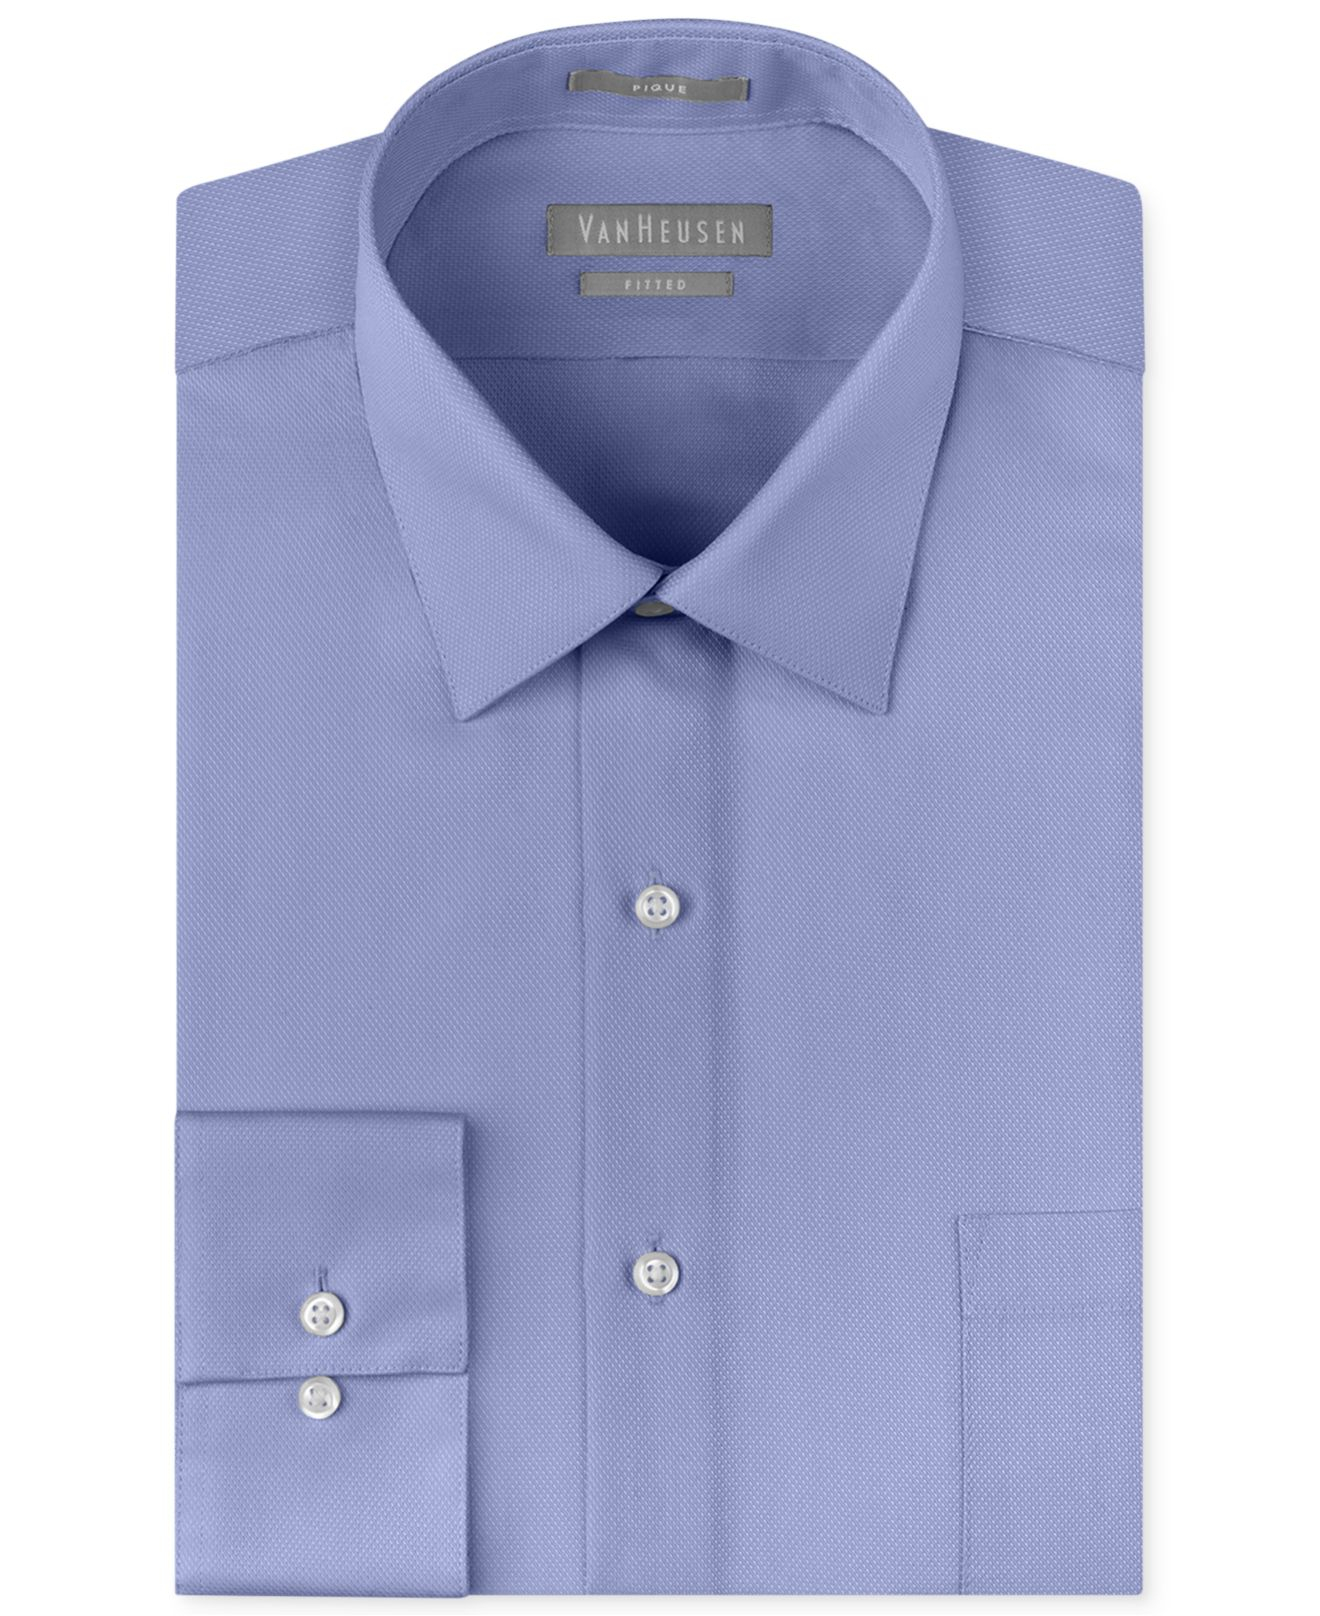 van heusen men 39 s extra slim fit non iron pique dress shirt